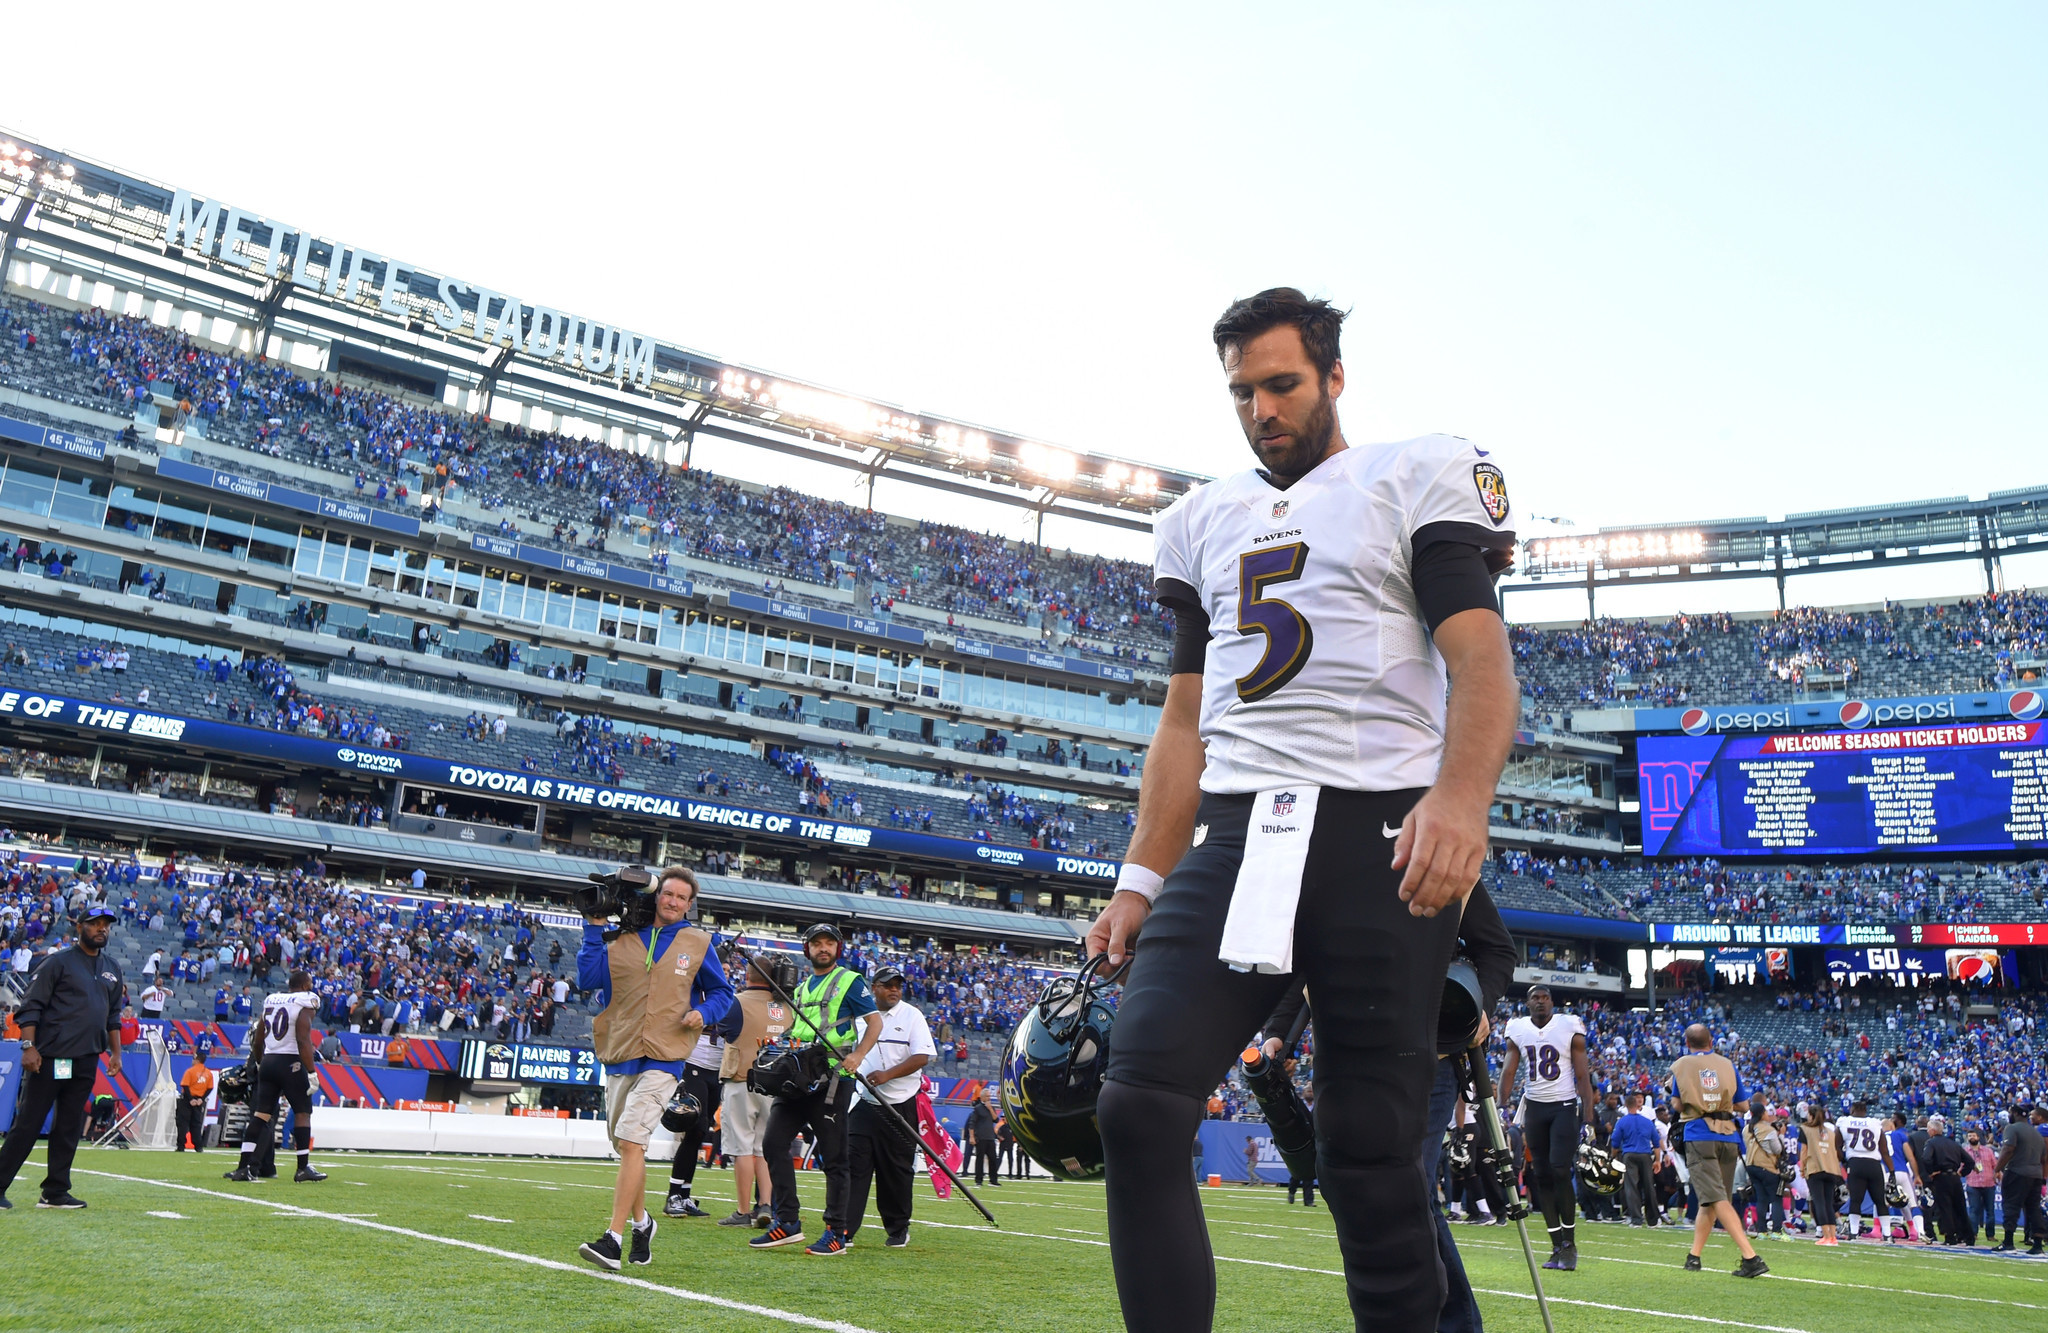 Bal-5-things-we-learned-from-the-ravens-27-23-loss-to-the-new-york-giants-20161016